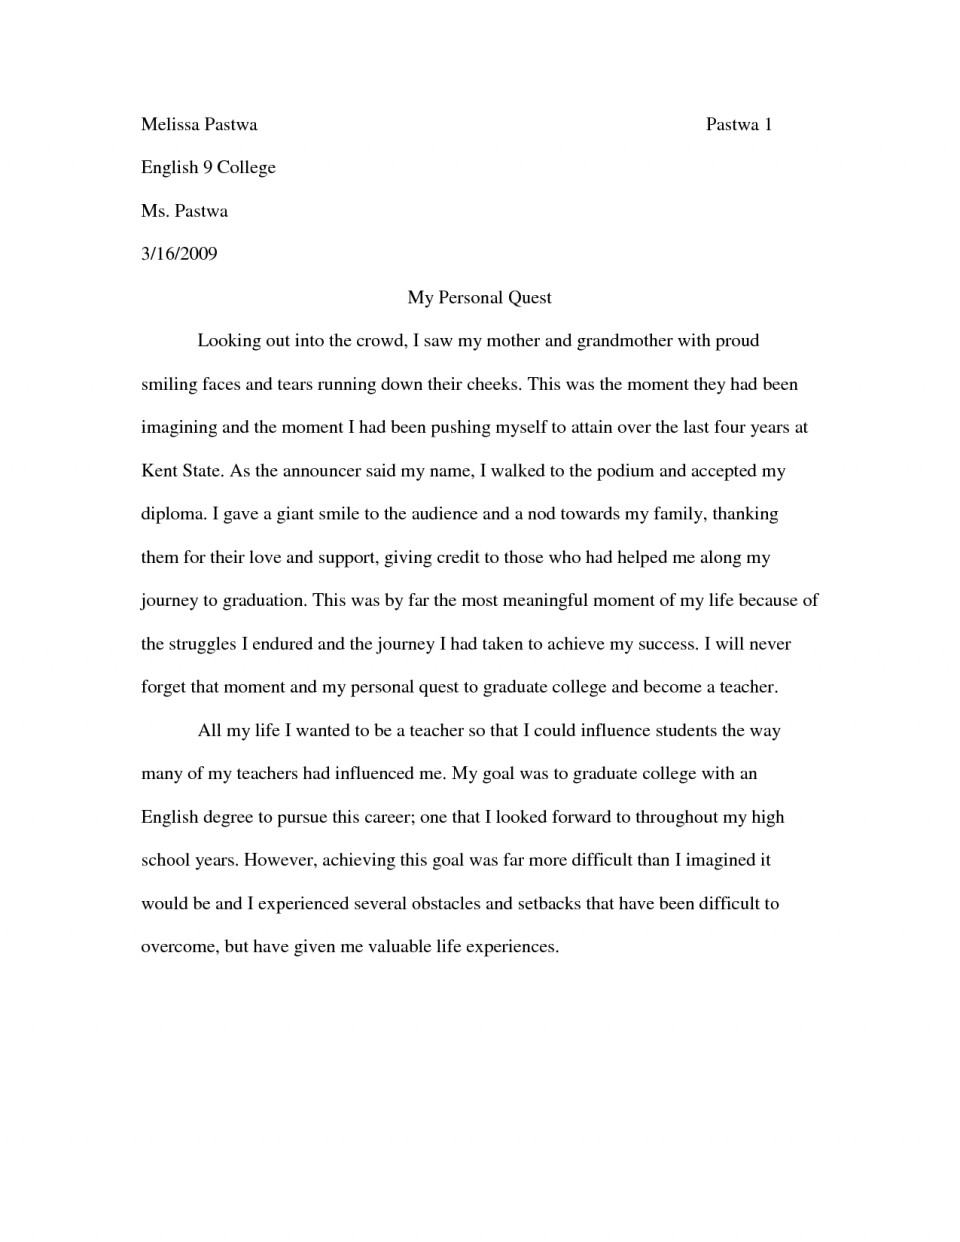 009 Writing Narrative Essay Example Dialogue Of L Amazing A About Being Judged Quizlet Powerpoint 960